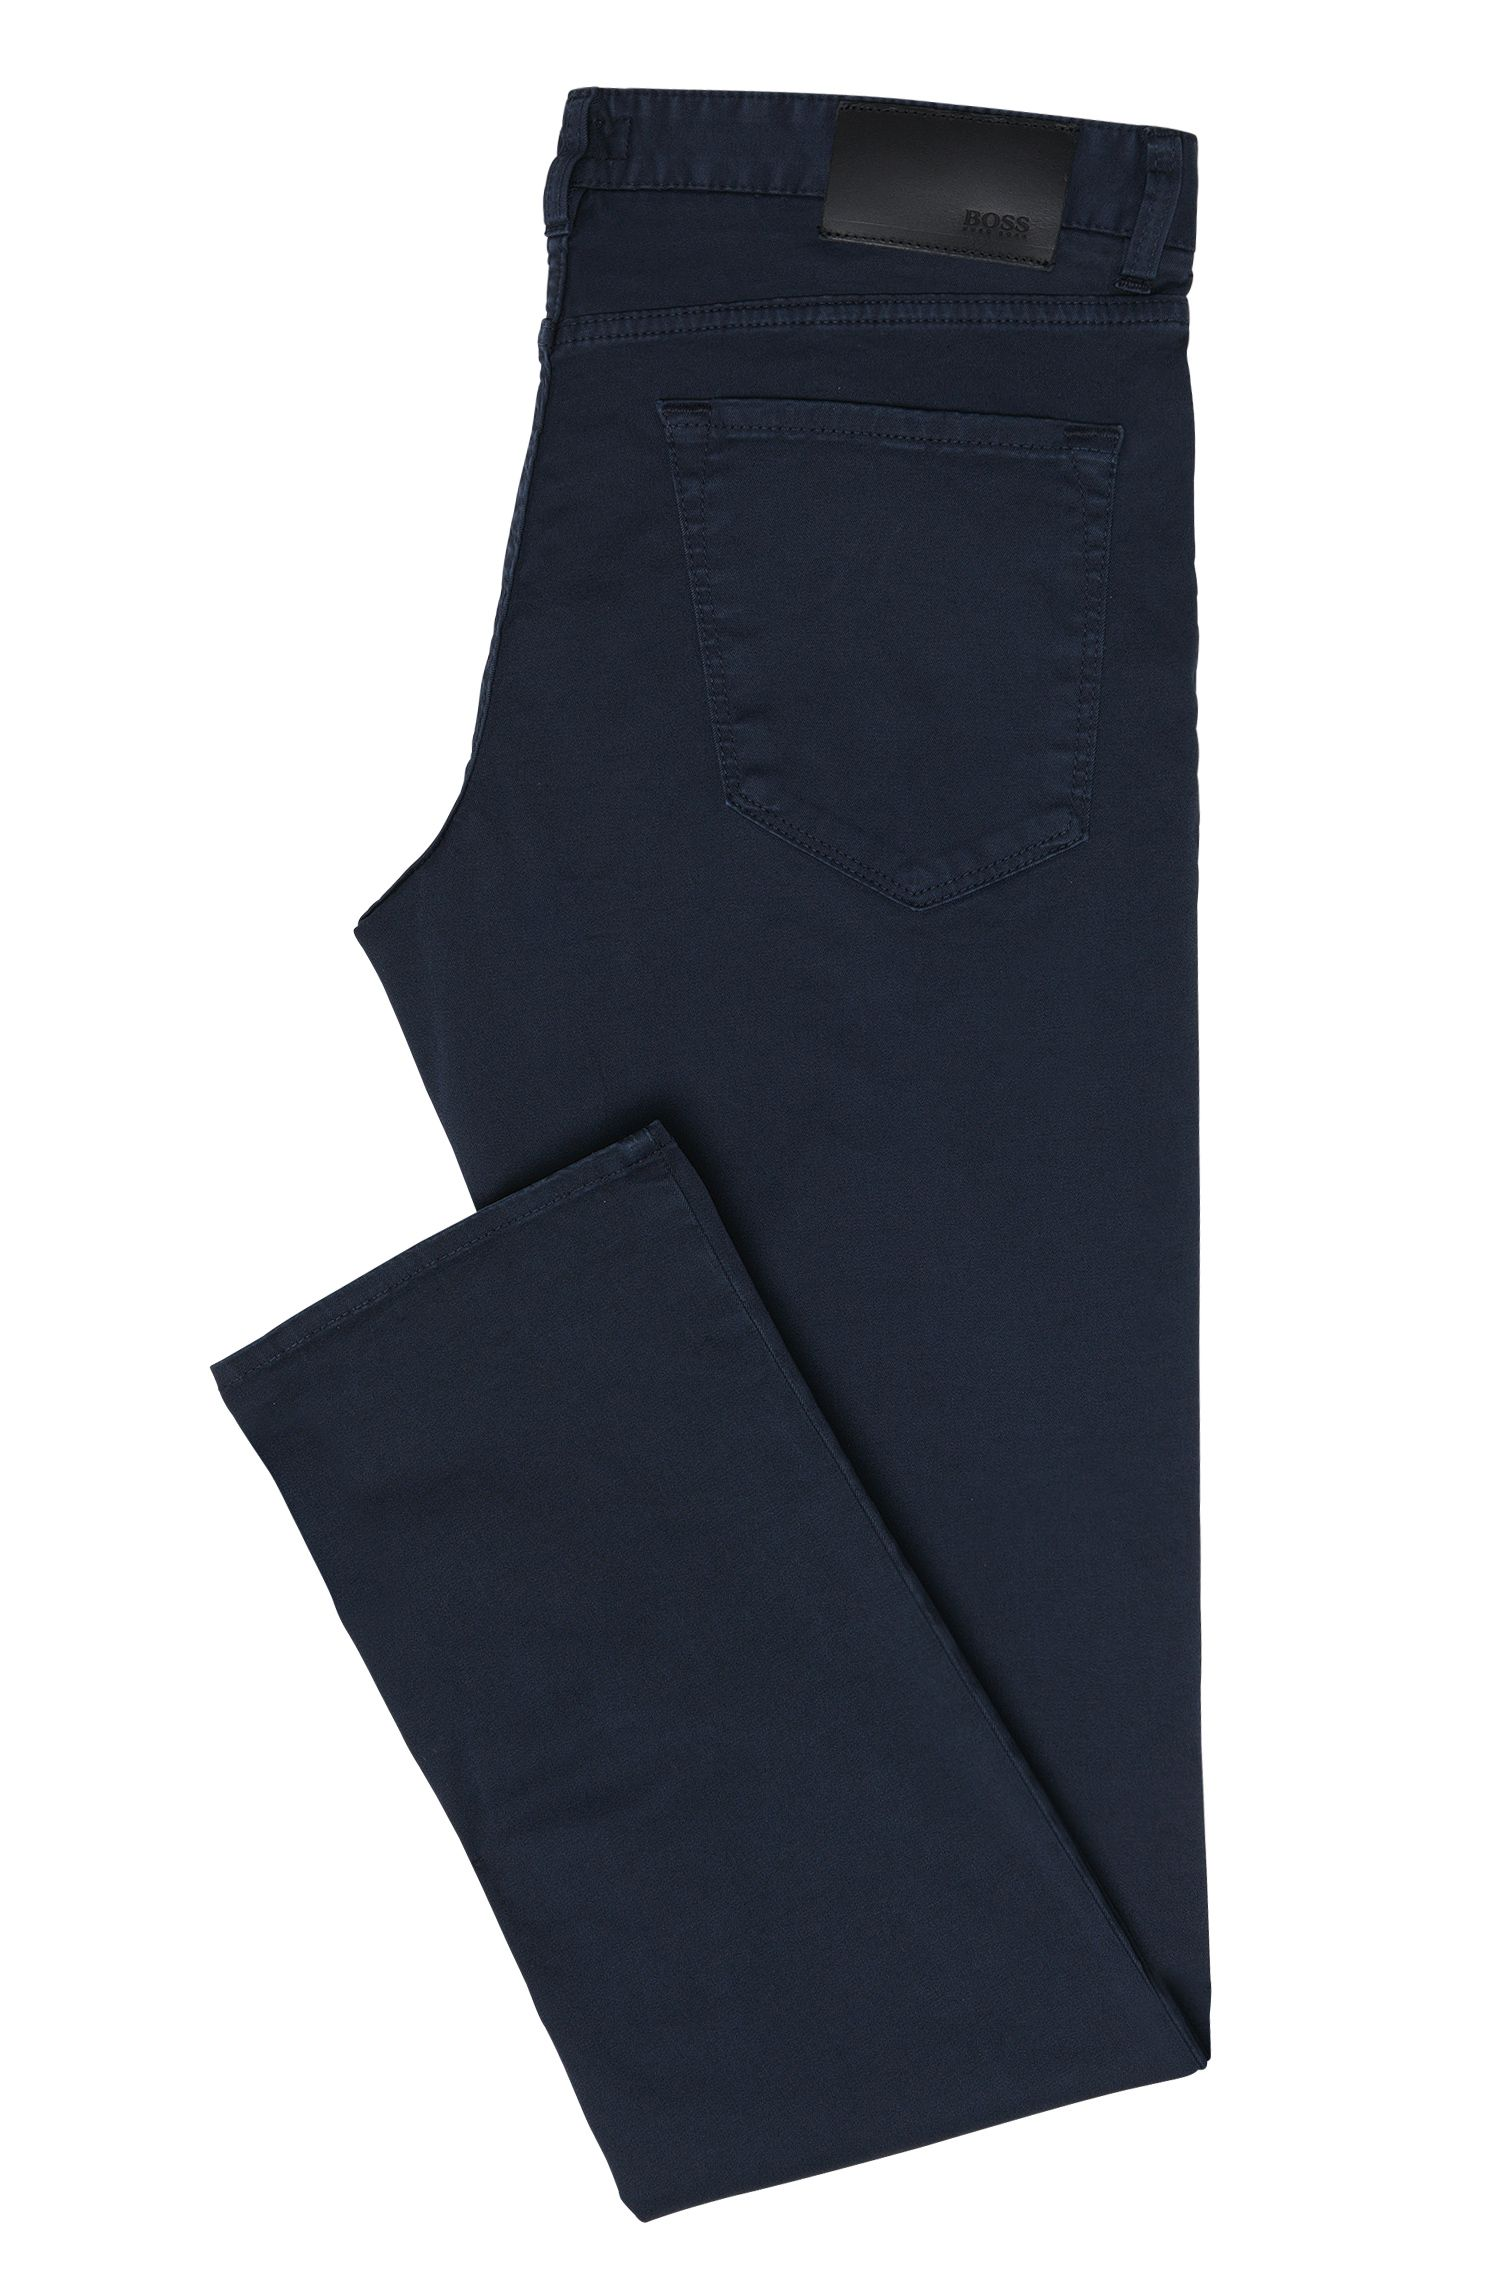 Pantalon Regular Fit en coton stretch de style cinq poches : « Maine3-20 »